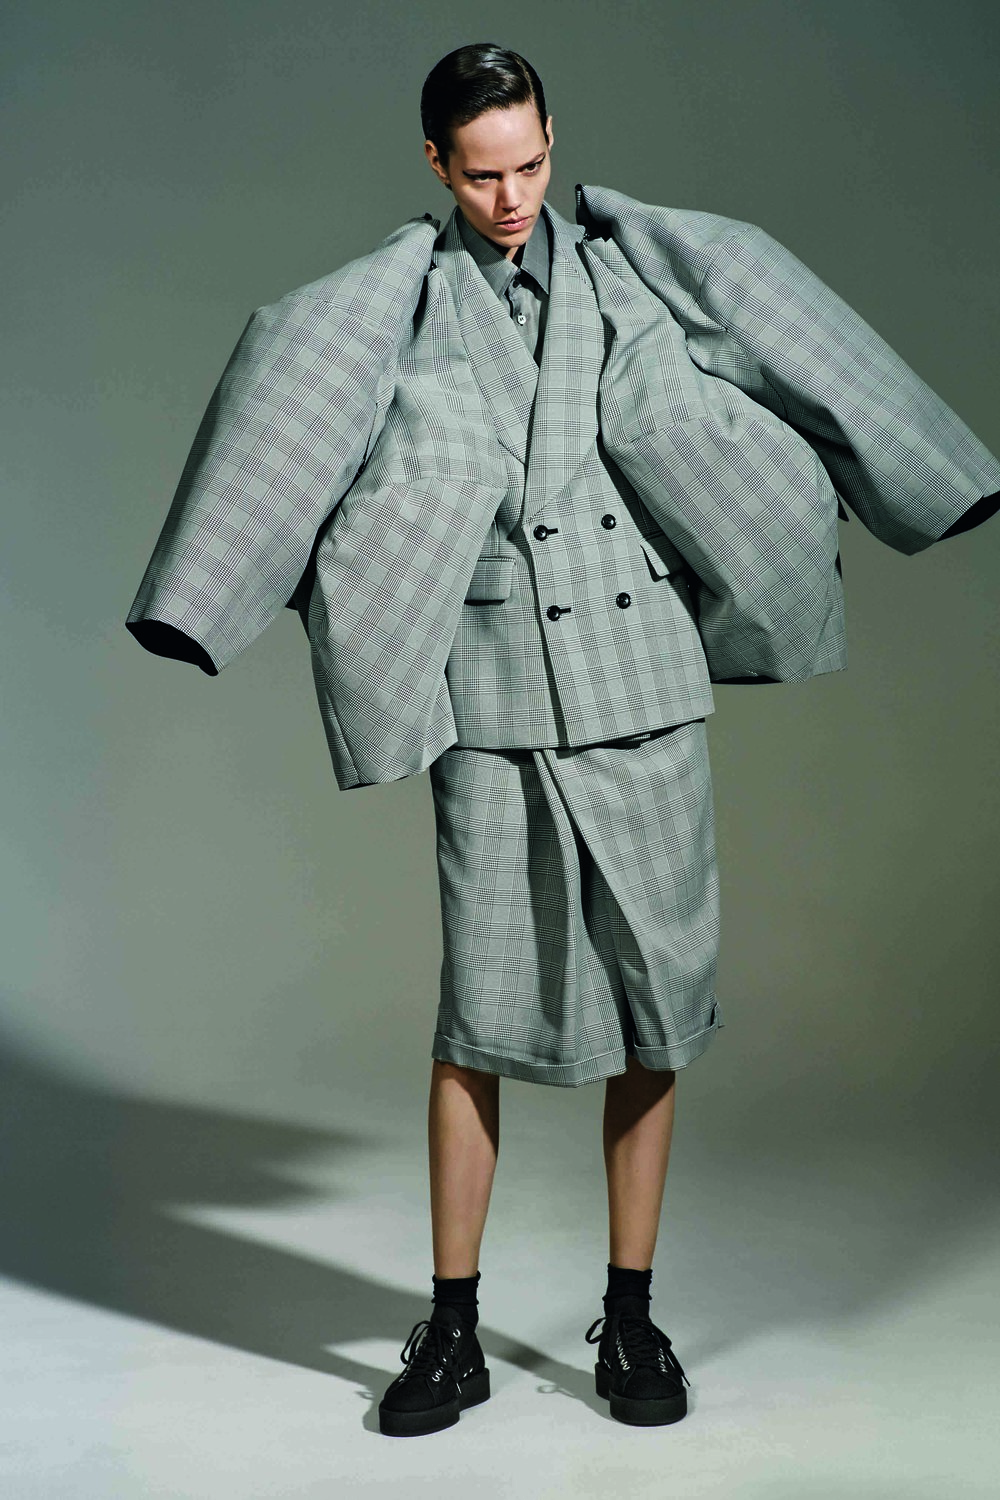 Rei Kawakubo (Japanese, born 1942) for Comme des Garçons  (Japanese, founded 1969), The Infinity of Tailoring,  autumn/winter 2013–14; Courtesy of Comme des Garçons.  Photograph by © Collier Schorr; Courtesy of The Metropolitan  Museum of Art